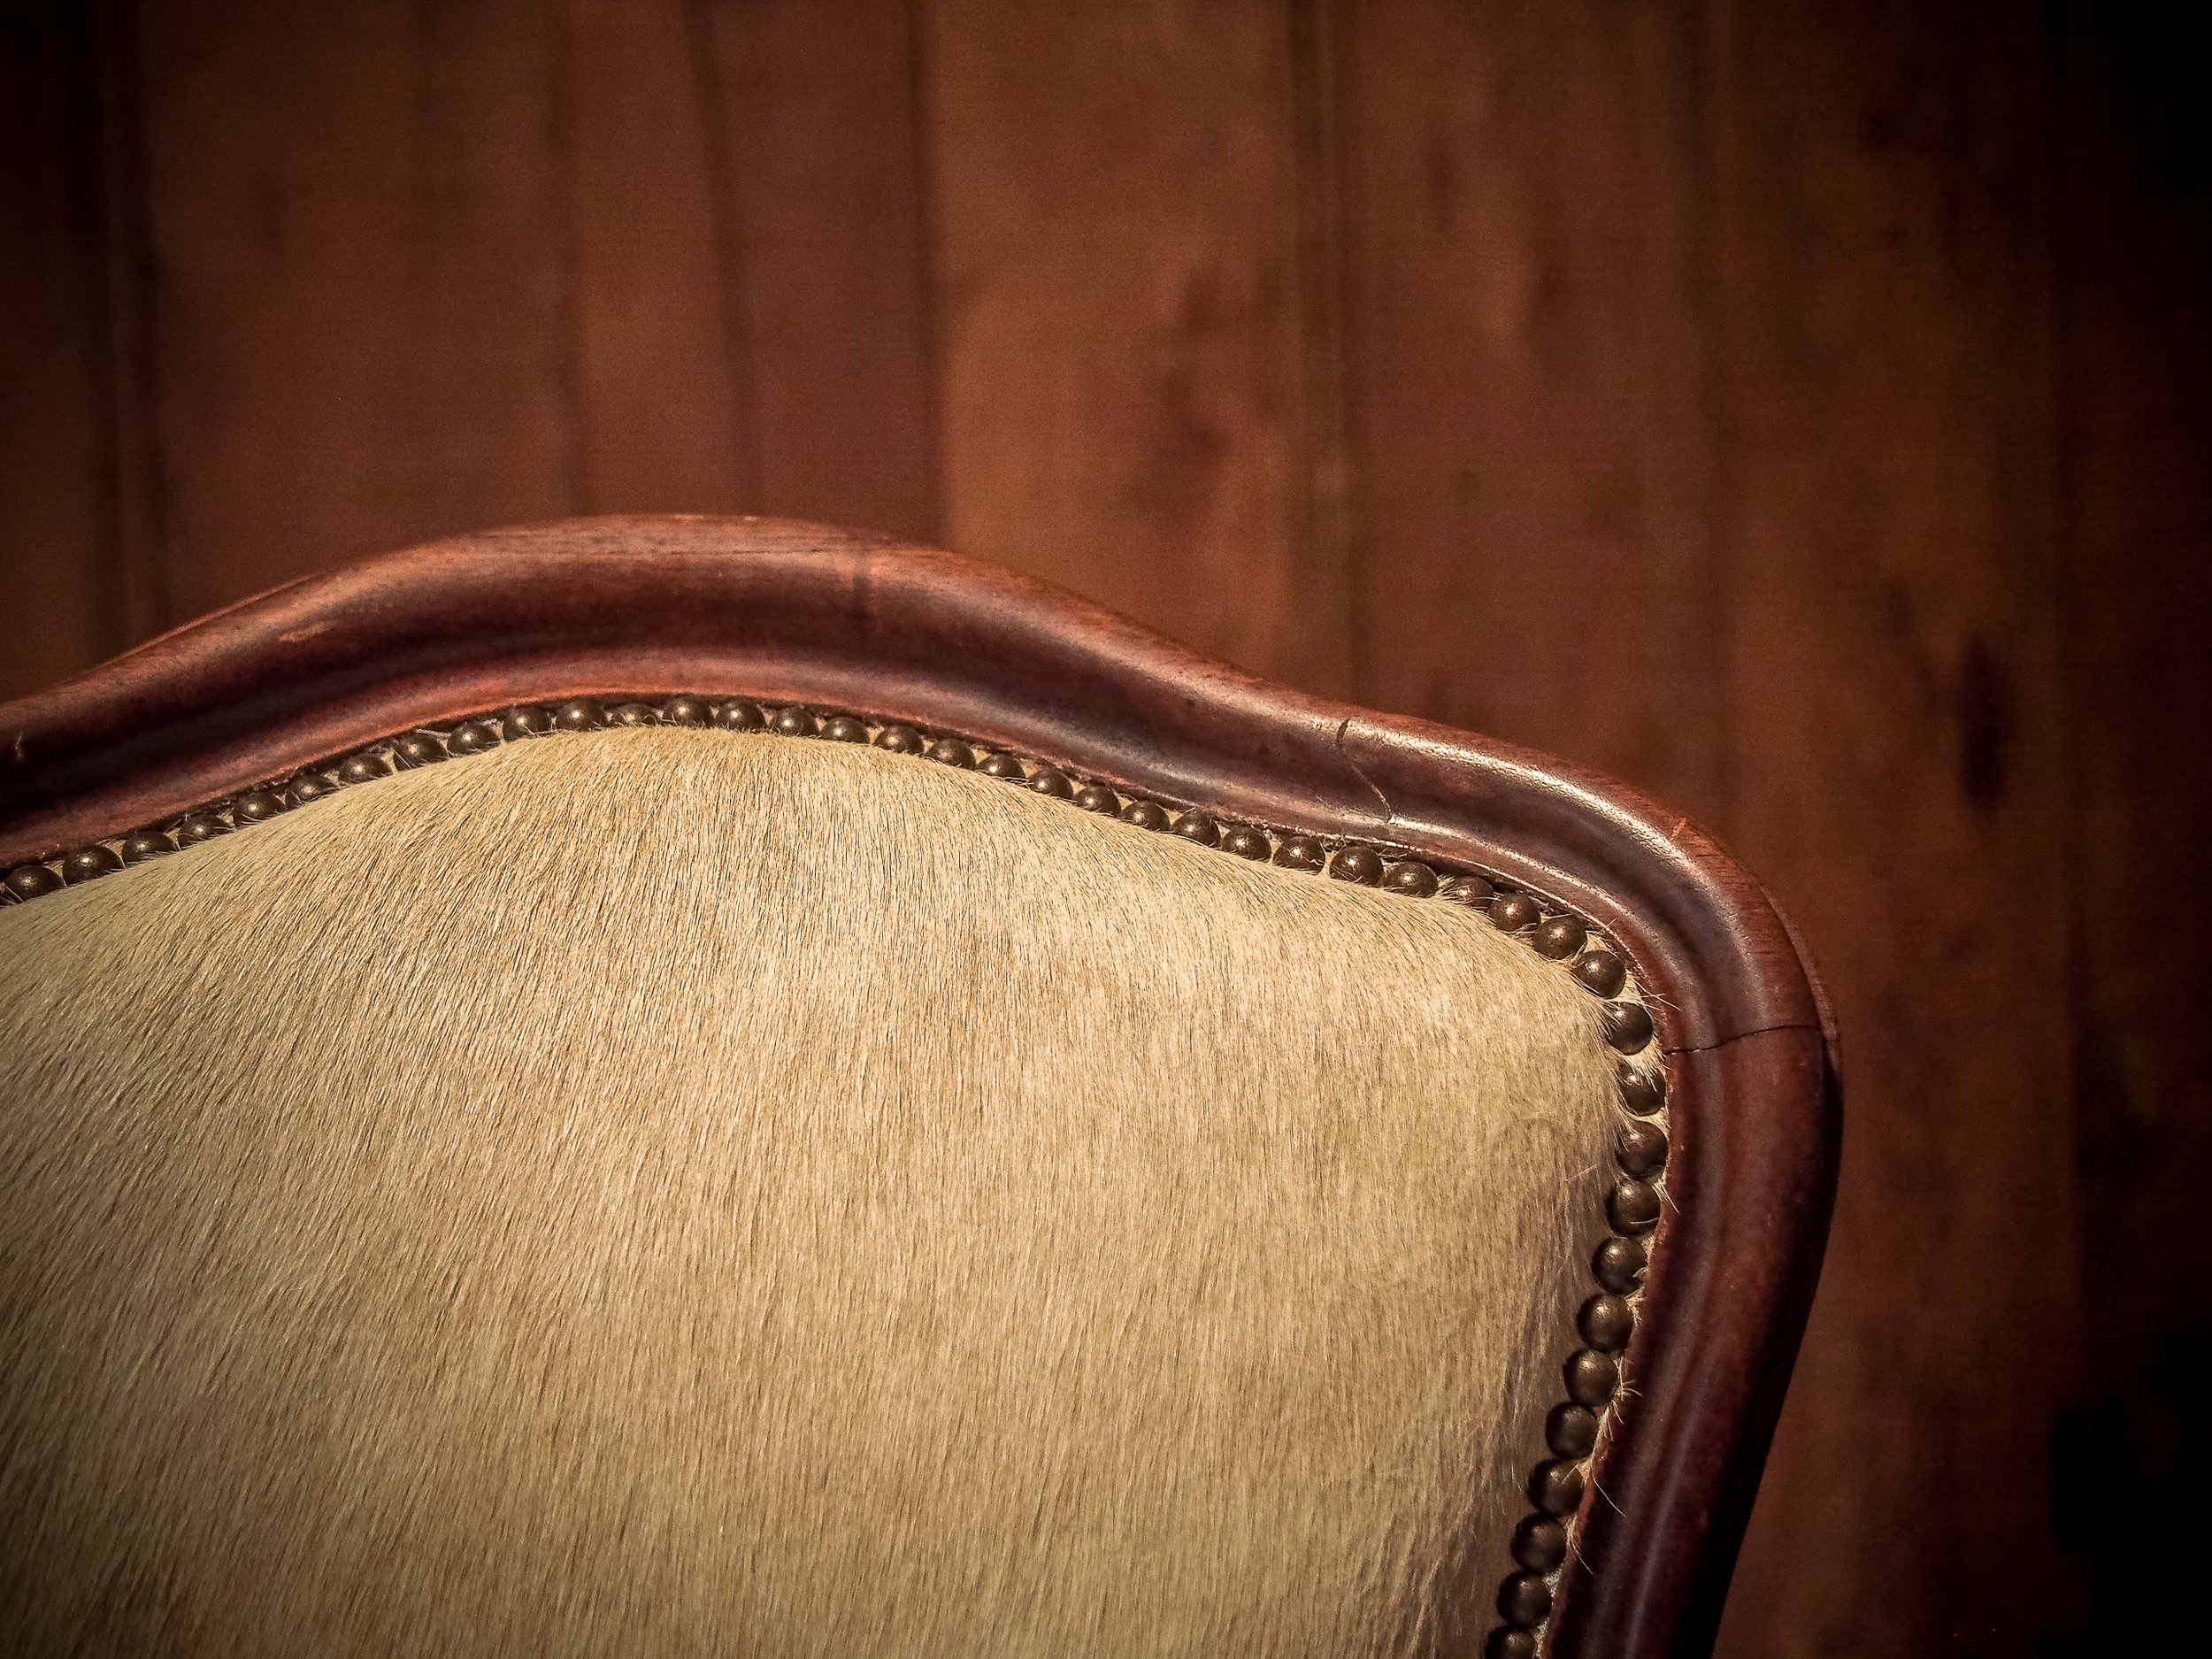 Antique chair re-covered in rawhide